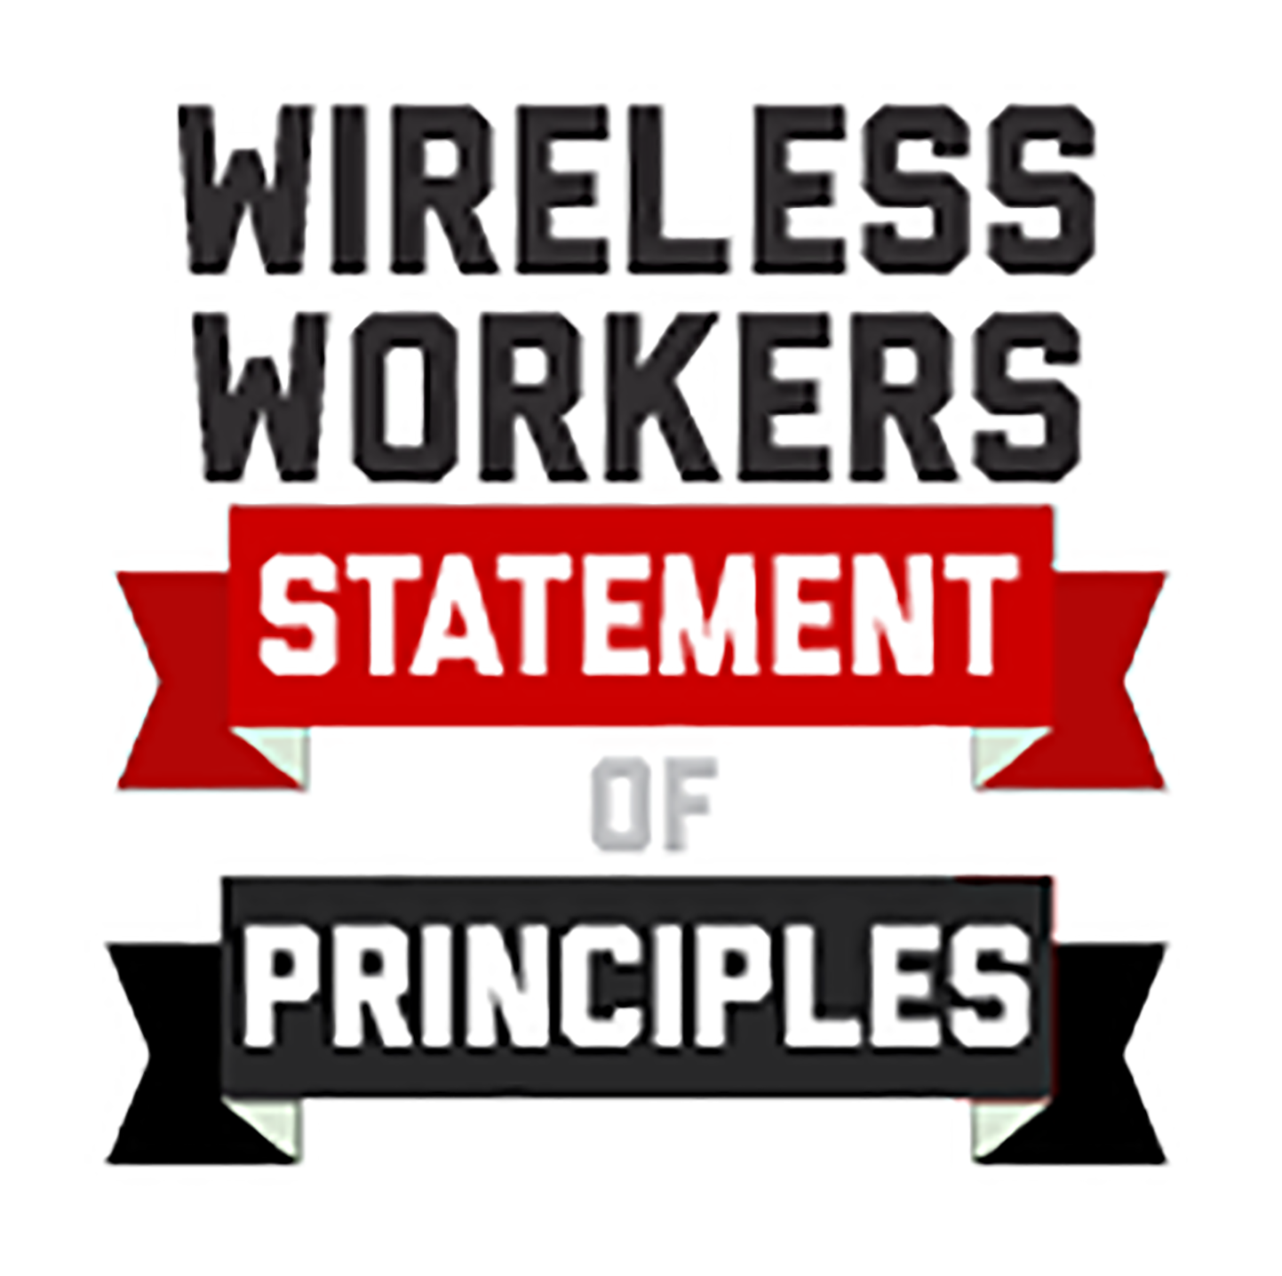 Statement of Principles